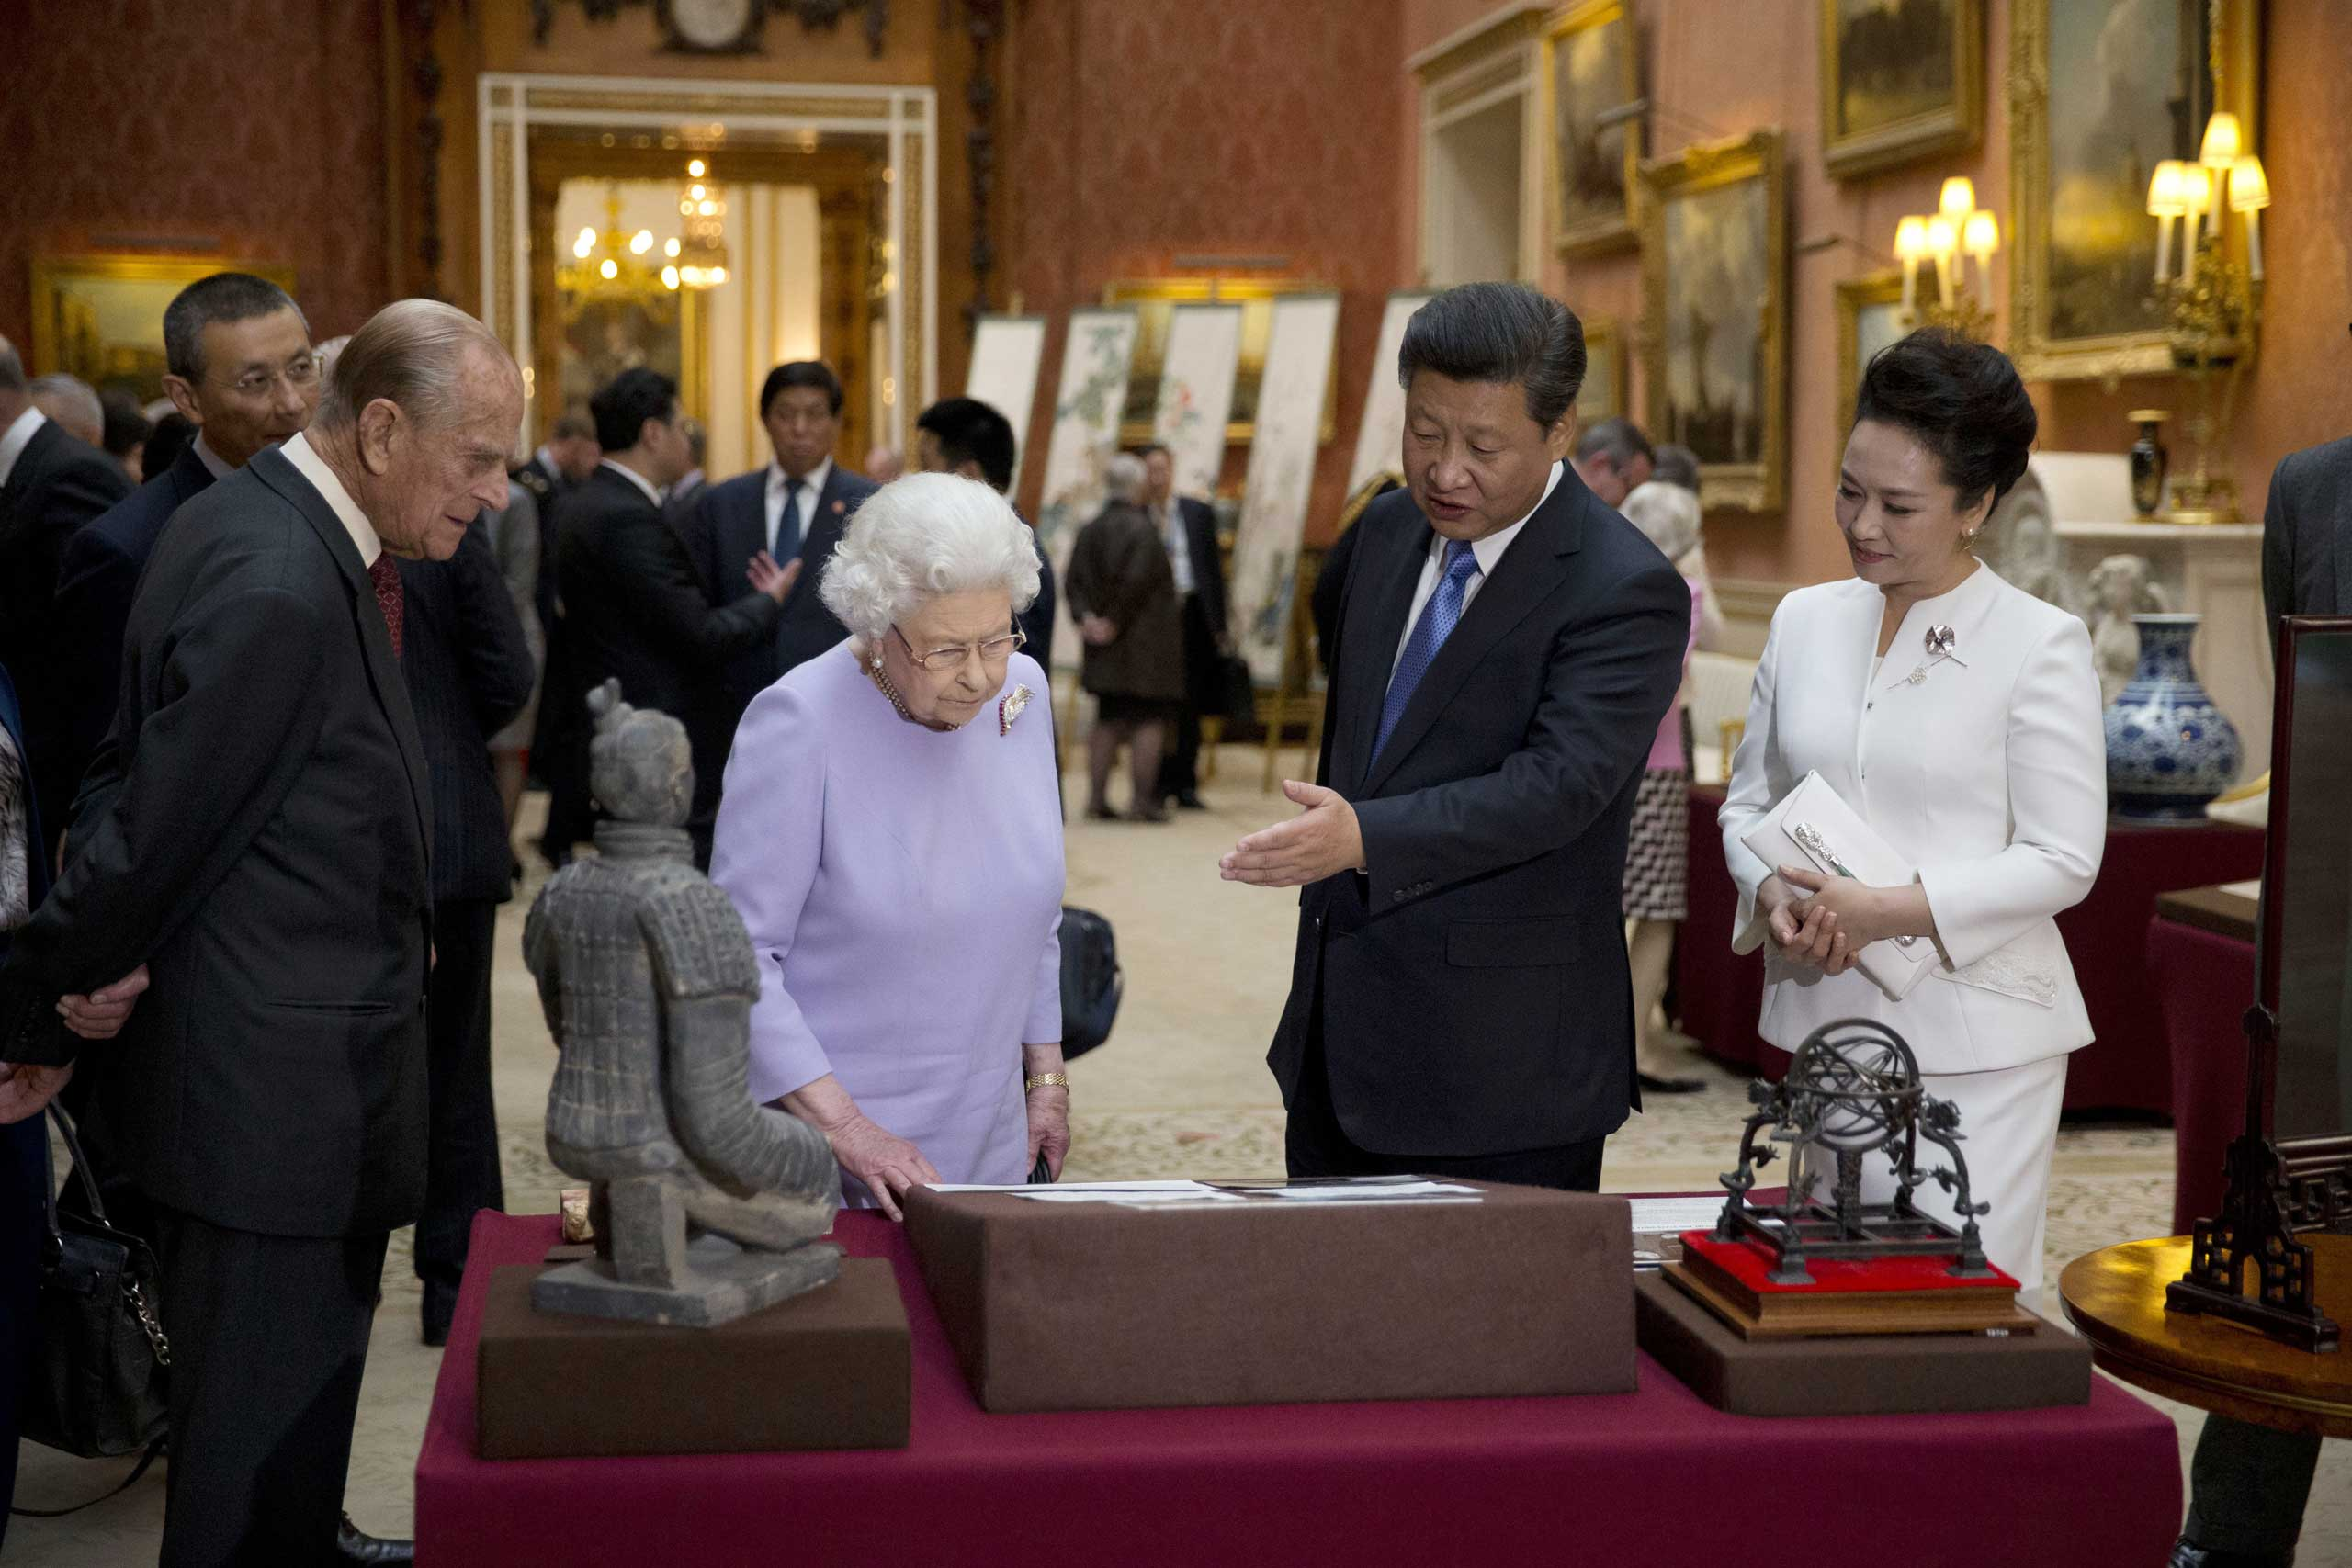 President Xi Jinping and First Lady Peng Liyuan with Queen Elizabeth II, and Prince Philip, Duke of Edinburgh view a display of Chinese items from the Royal Collection at Buckingham Palace in London, on Oct. 20, 2015